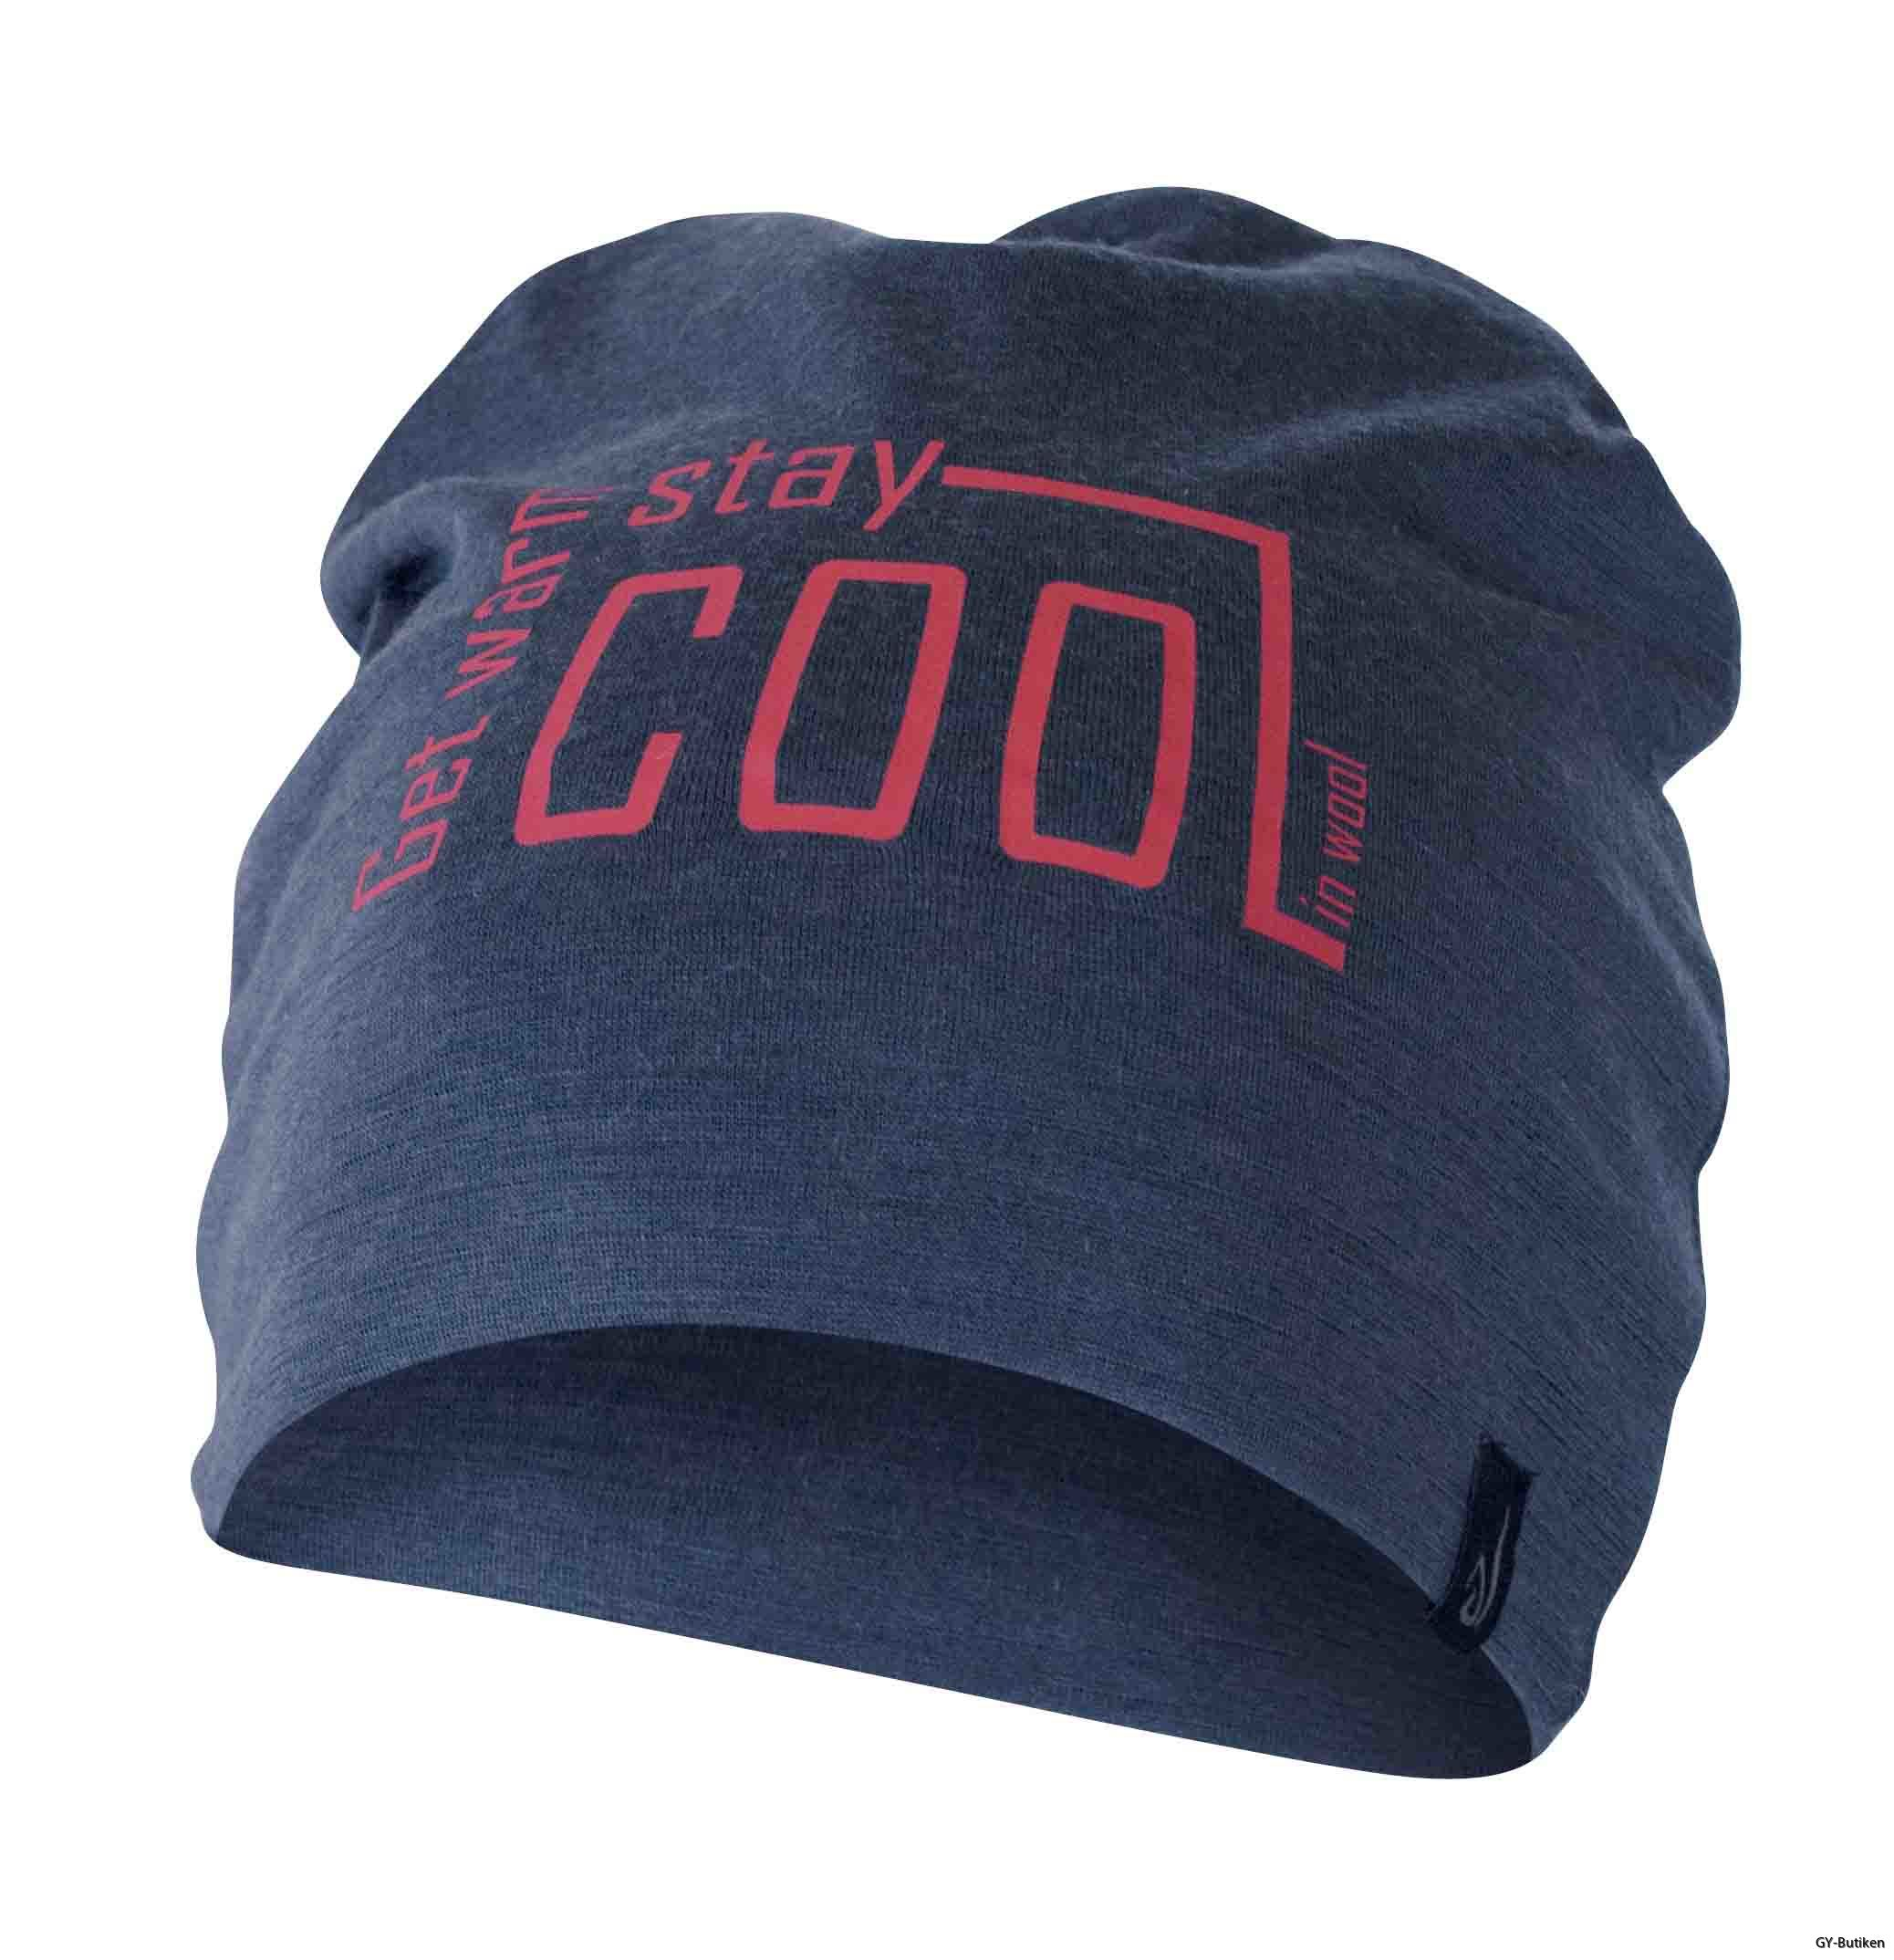 UW_Hat_Stay_Cool_617